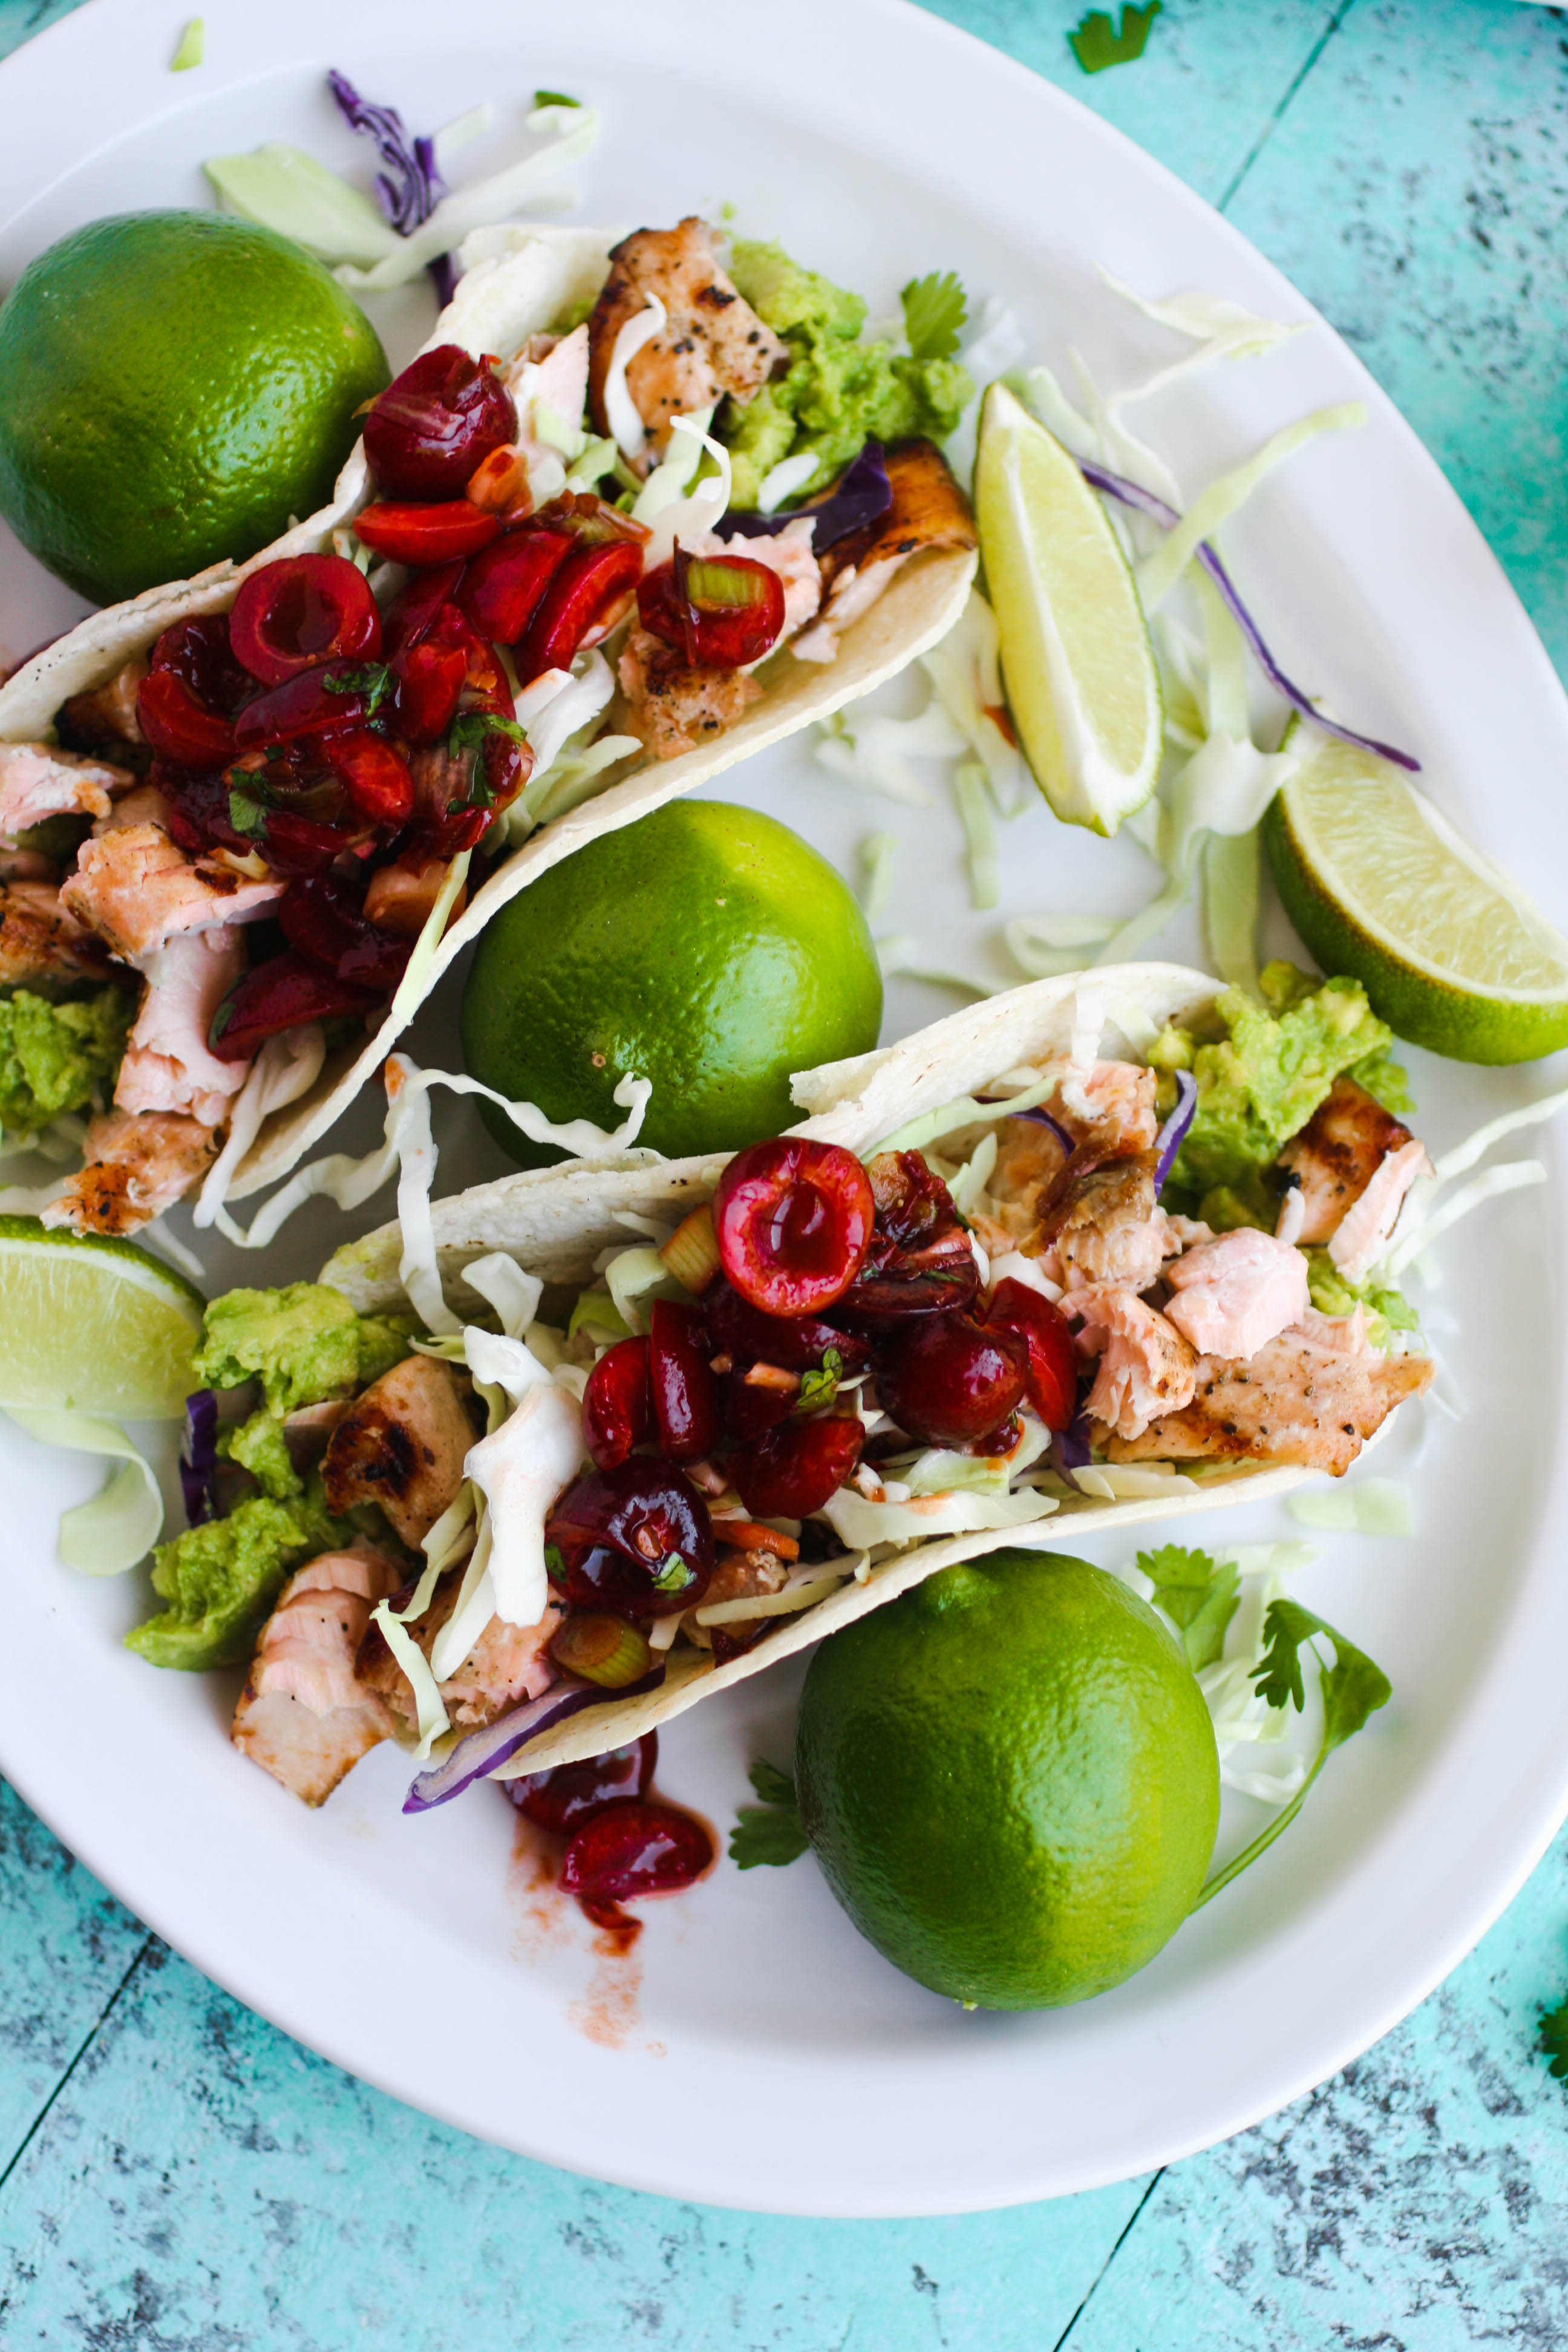 Grilled Salmon Tacos with Cherry-Chipotle Salsa is an amazing summer dish. You'll love everything from the salmon down to the fresh salsa!